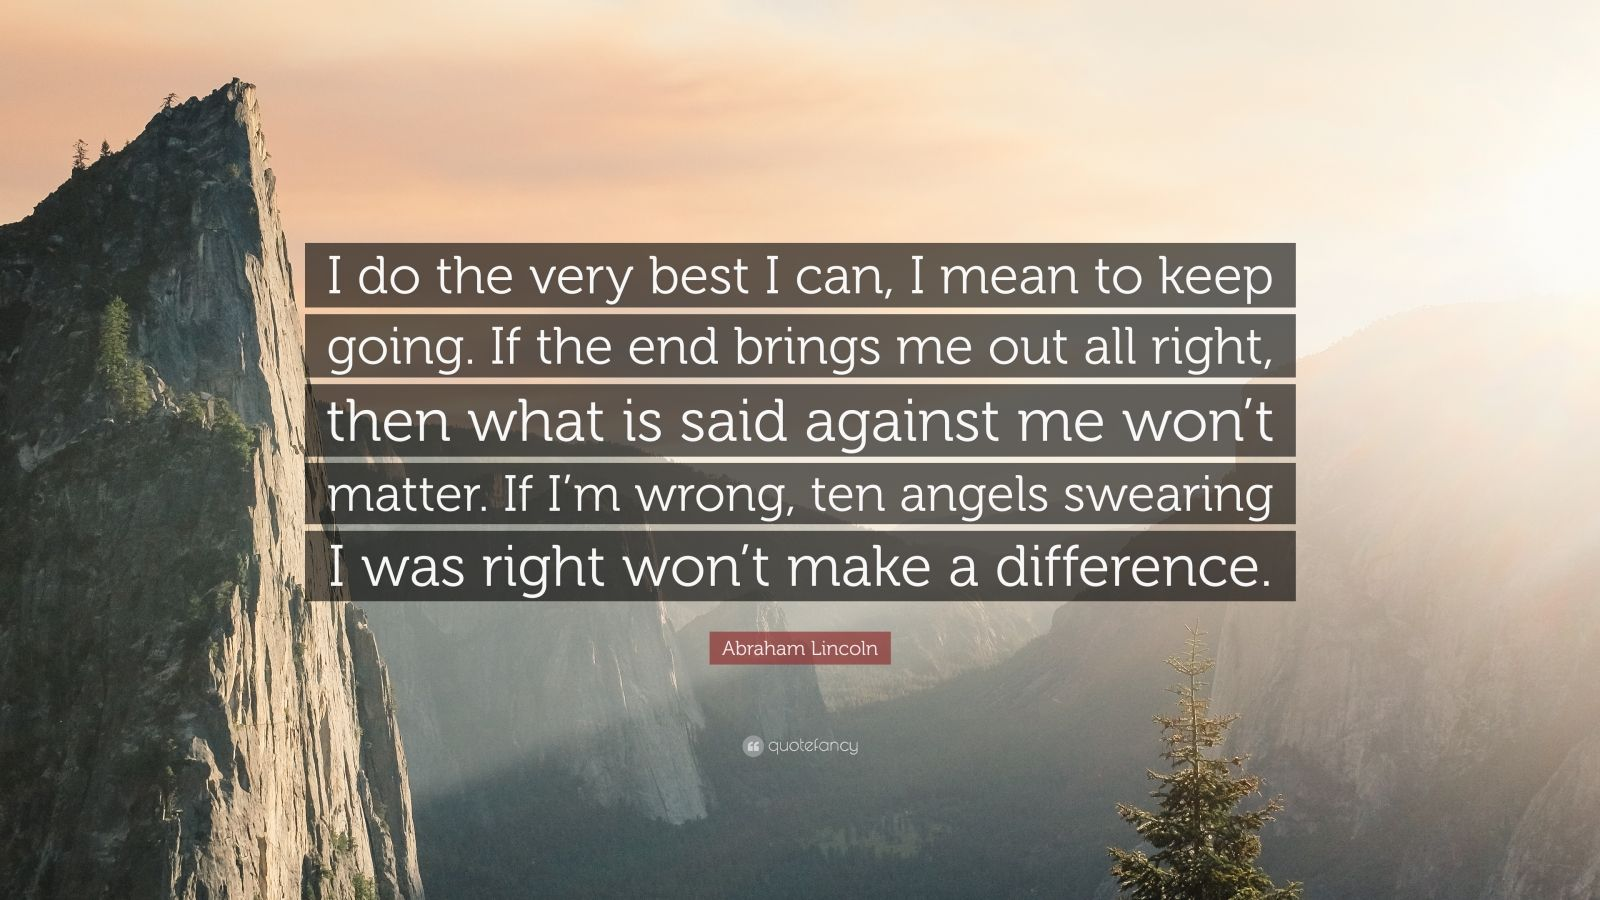 """Abraham Lincoln Quote: """"I do the very best I can, I mean to keep going. If the end brings me out all right, then what is said against me won't matter. If I'm wrong, ten angels swearing I was right won't make a difference."""""""